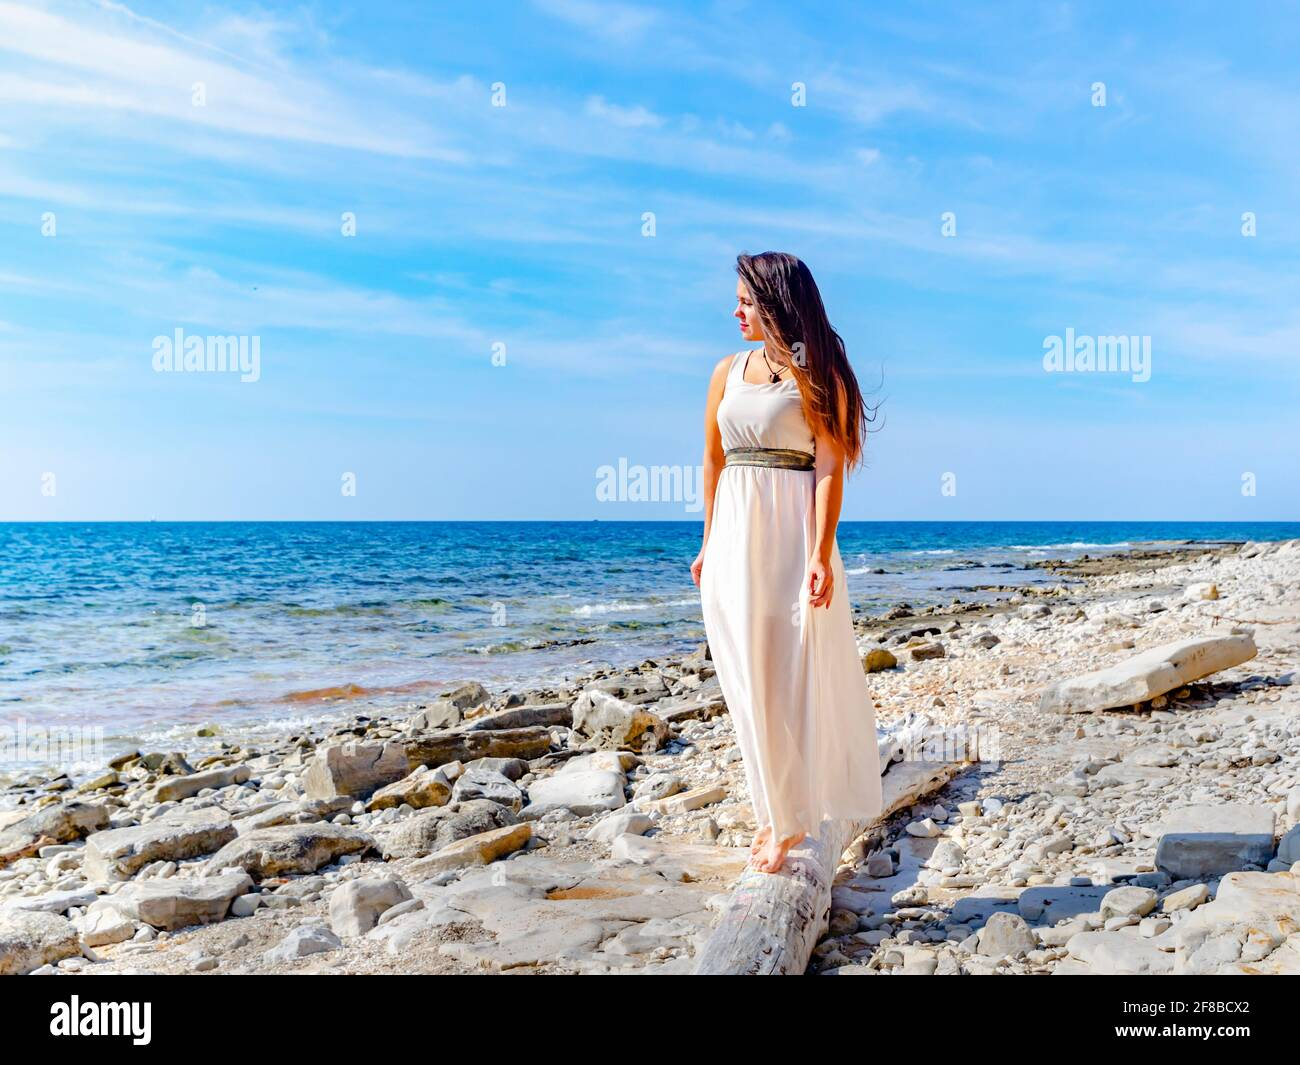 Young woman in White clothing long dress walking barefeet near sea on beach seaside alone lonesome watching looking aside away at distance serious Stock Photo